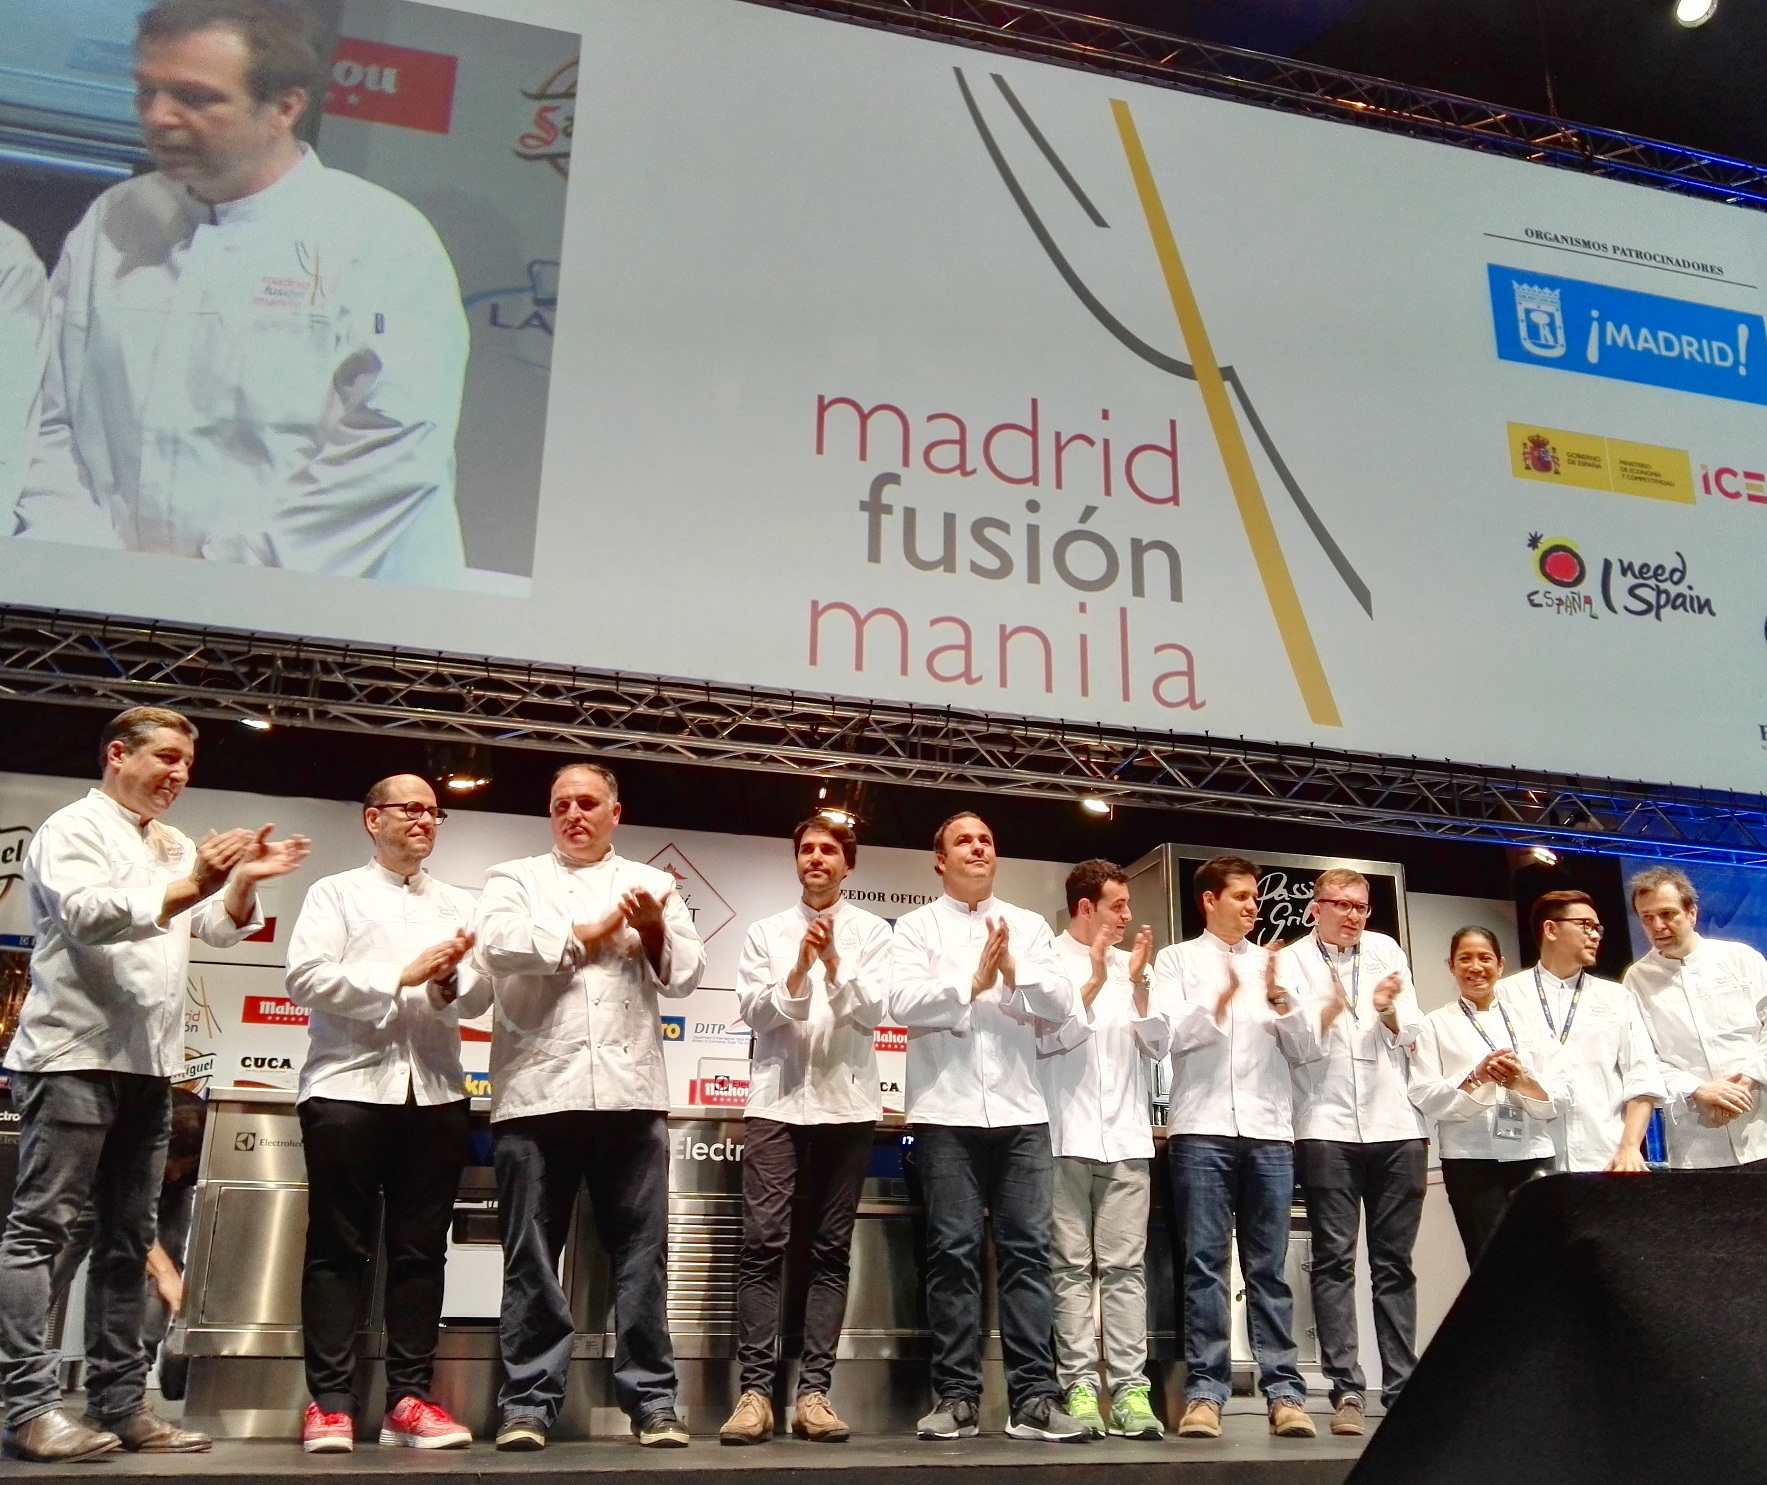 Presenting the cast of chefs coming to Manila this April 7 to 9 for Madrid Fusion Manila 2016: d Fusion 2016- Joan Roca (El Celler de Can Roca), Jordi Butron (EspaiSucre), Jose Andres, Virgilio Martinez, Angel Leon, Richard Camarena, Jorge Vallejo, Chele Gonzalez, Margarita Fores, Miko Aspiras, David Thompson